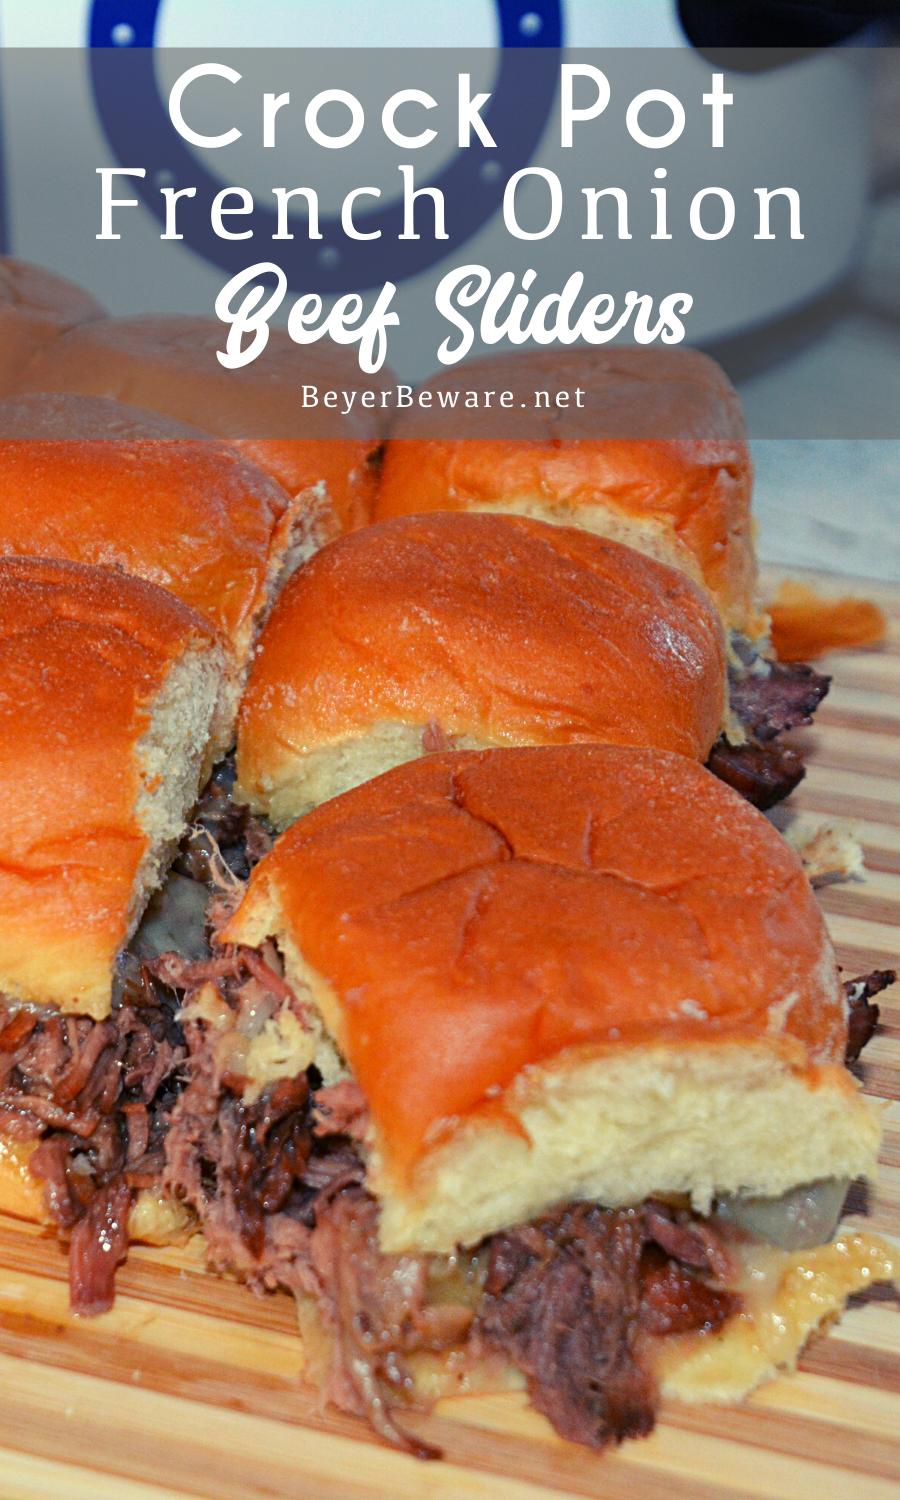 Crock Pot French onion beef sliders recipe is a shredded French onion beef roast made with canned French onion soup, onions, butter and beef broth used to make cheesy sliders on Hawaiian rolls.